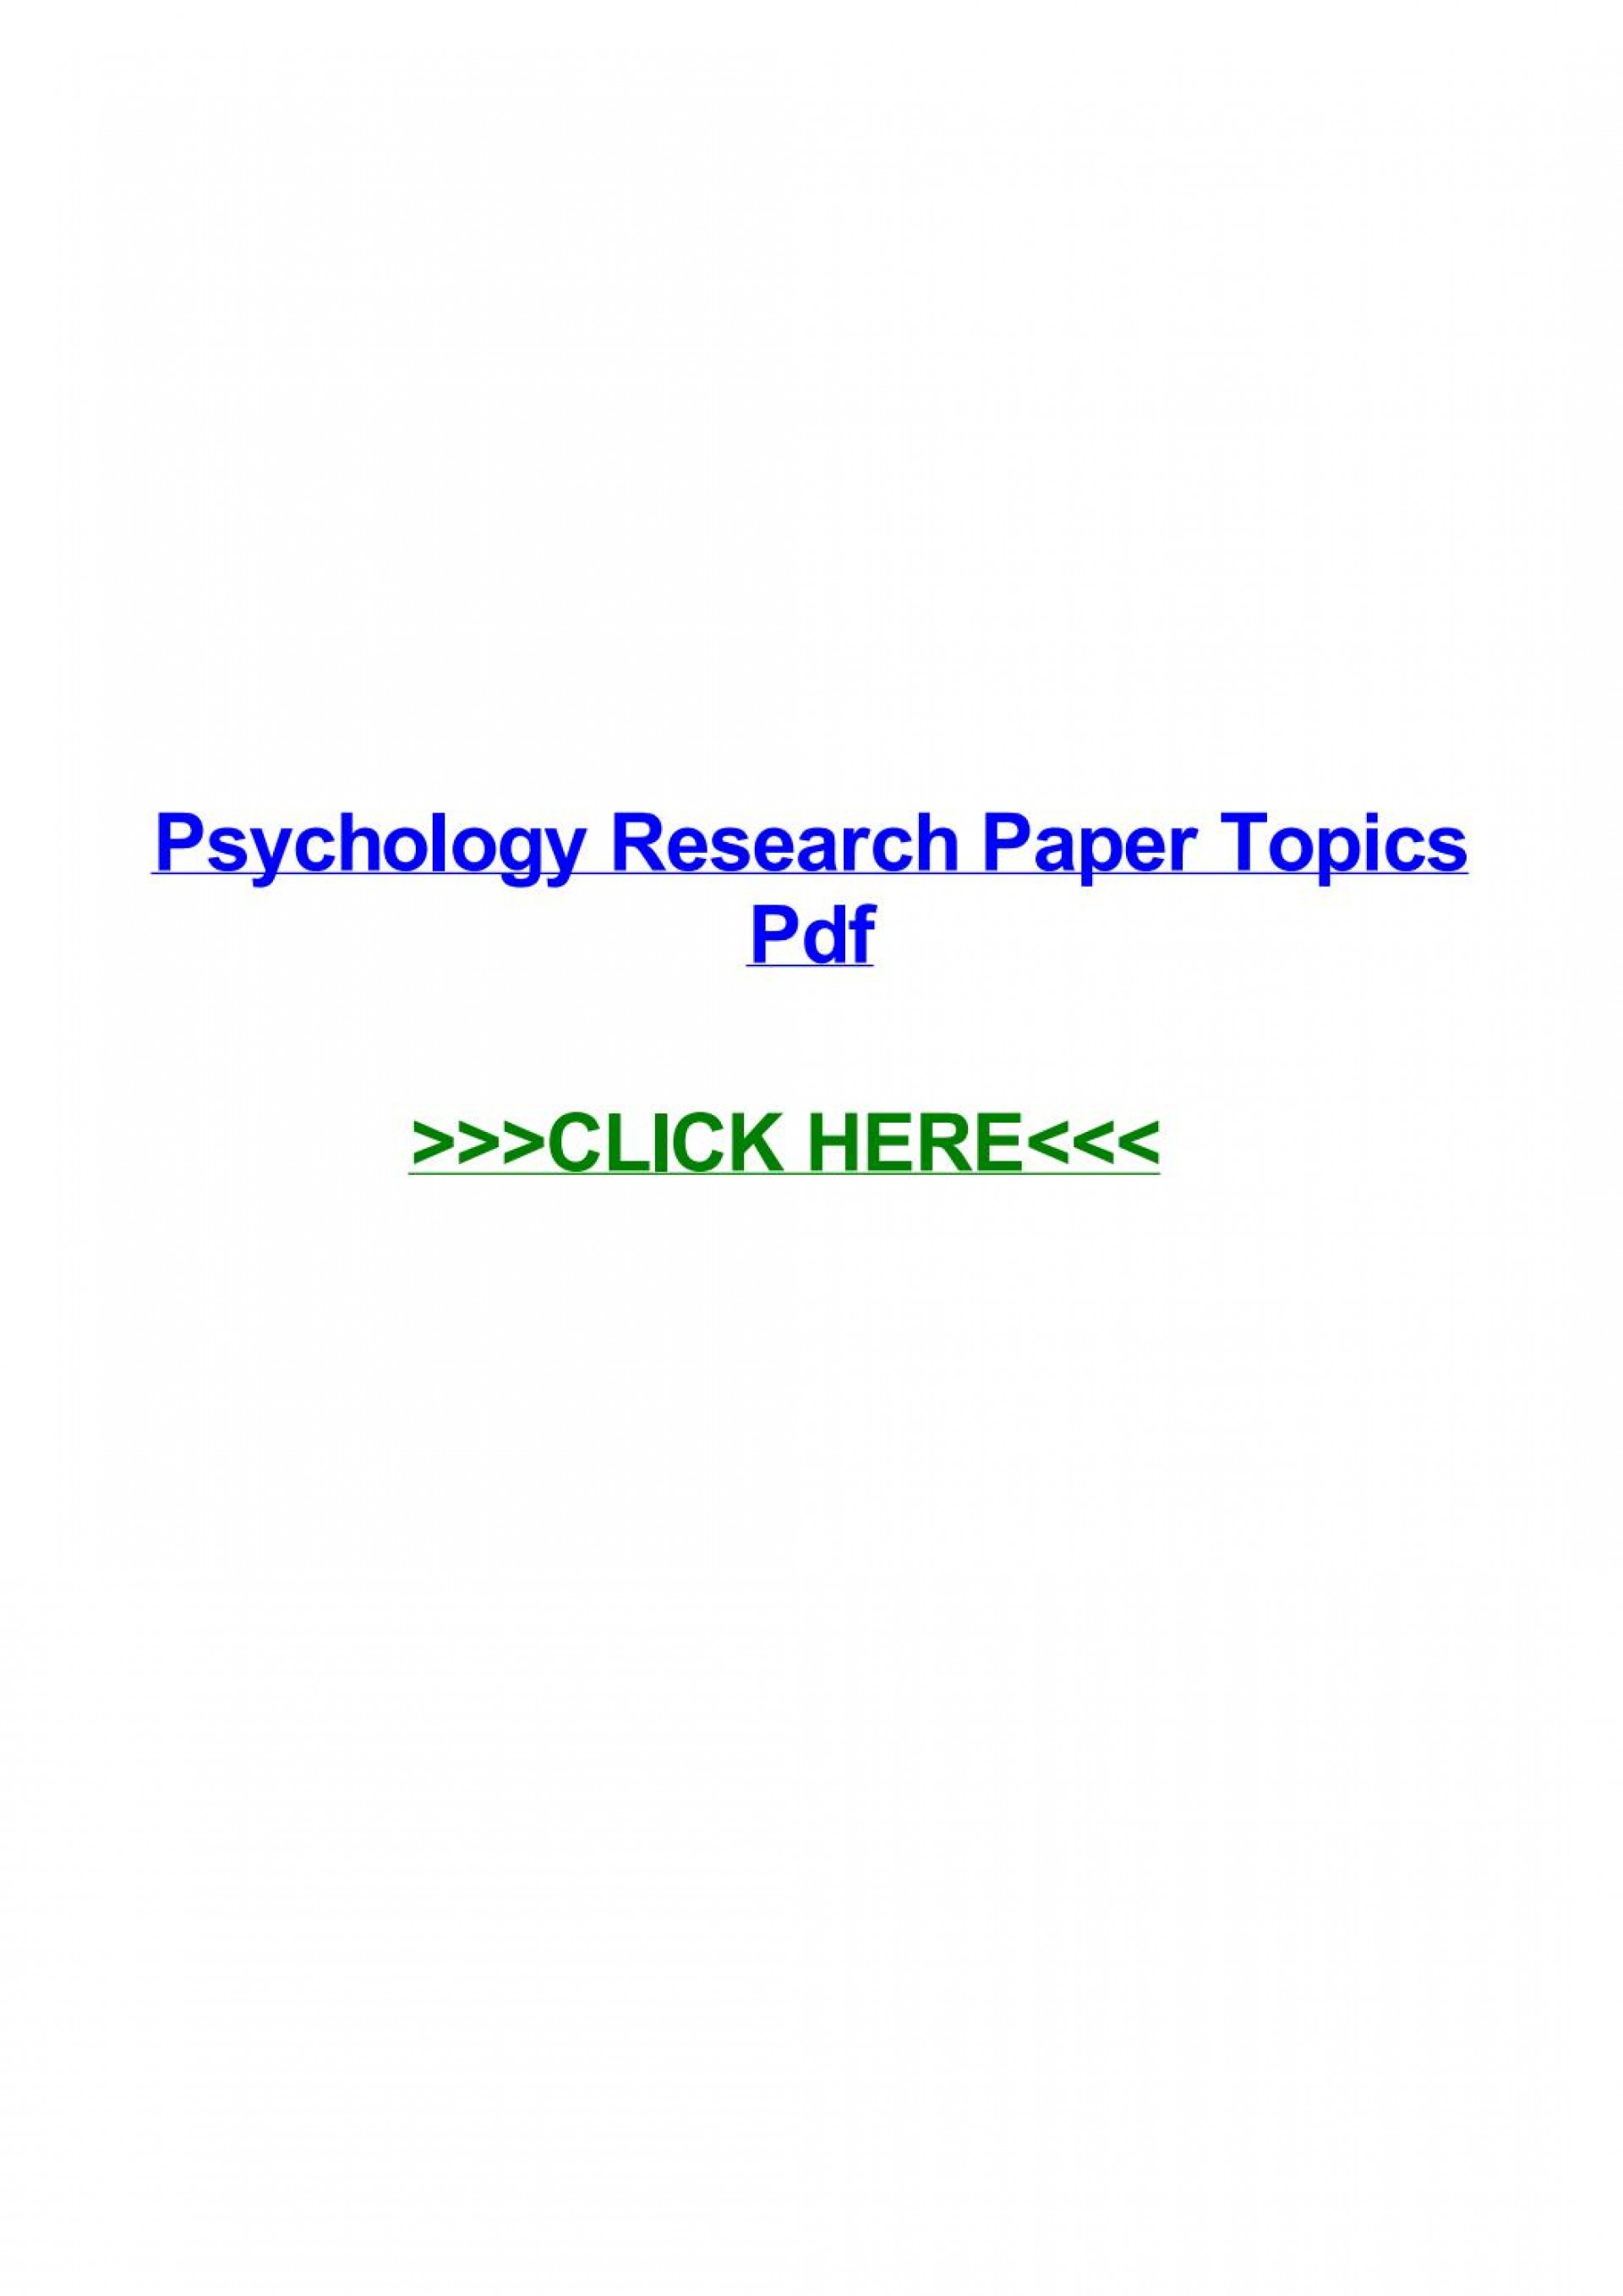 015 Psychology Research Paper Topics Pdf Page 1 Best 1920